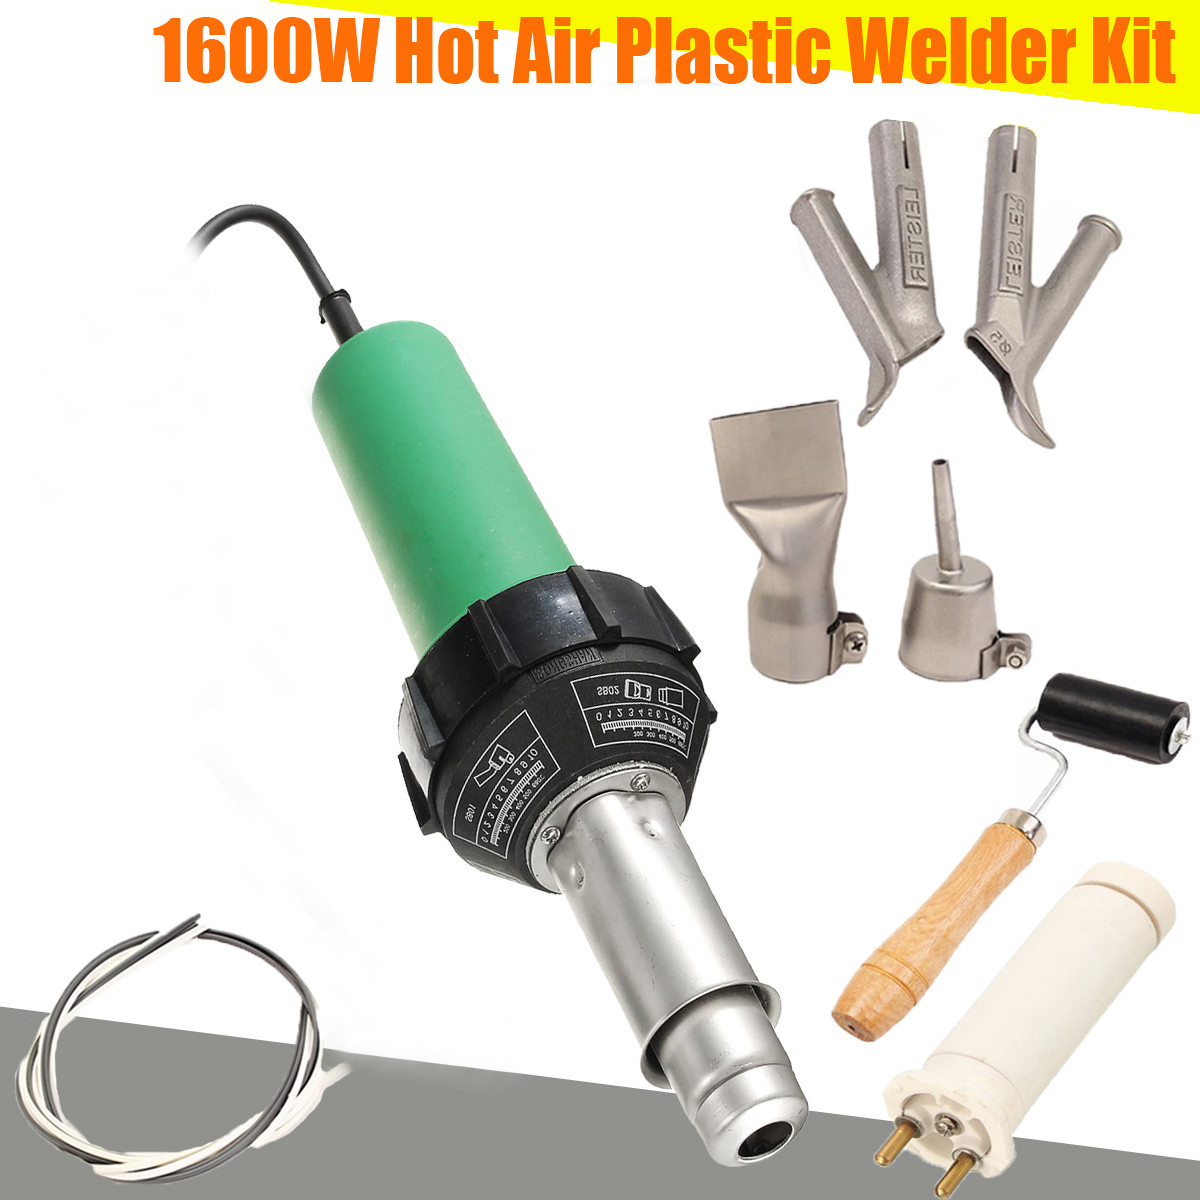 220V 1600W Welding Pistol & 2pcs Speed Nozzle & Roll Hot Air Torch Plastic Welding Heat Welding